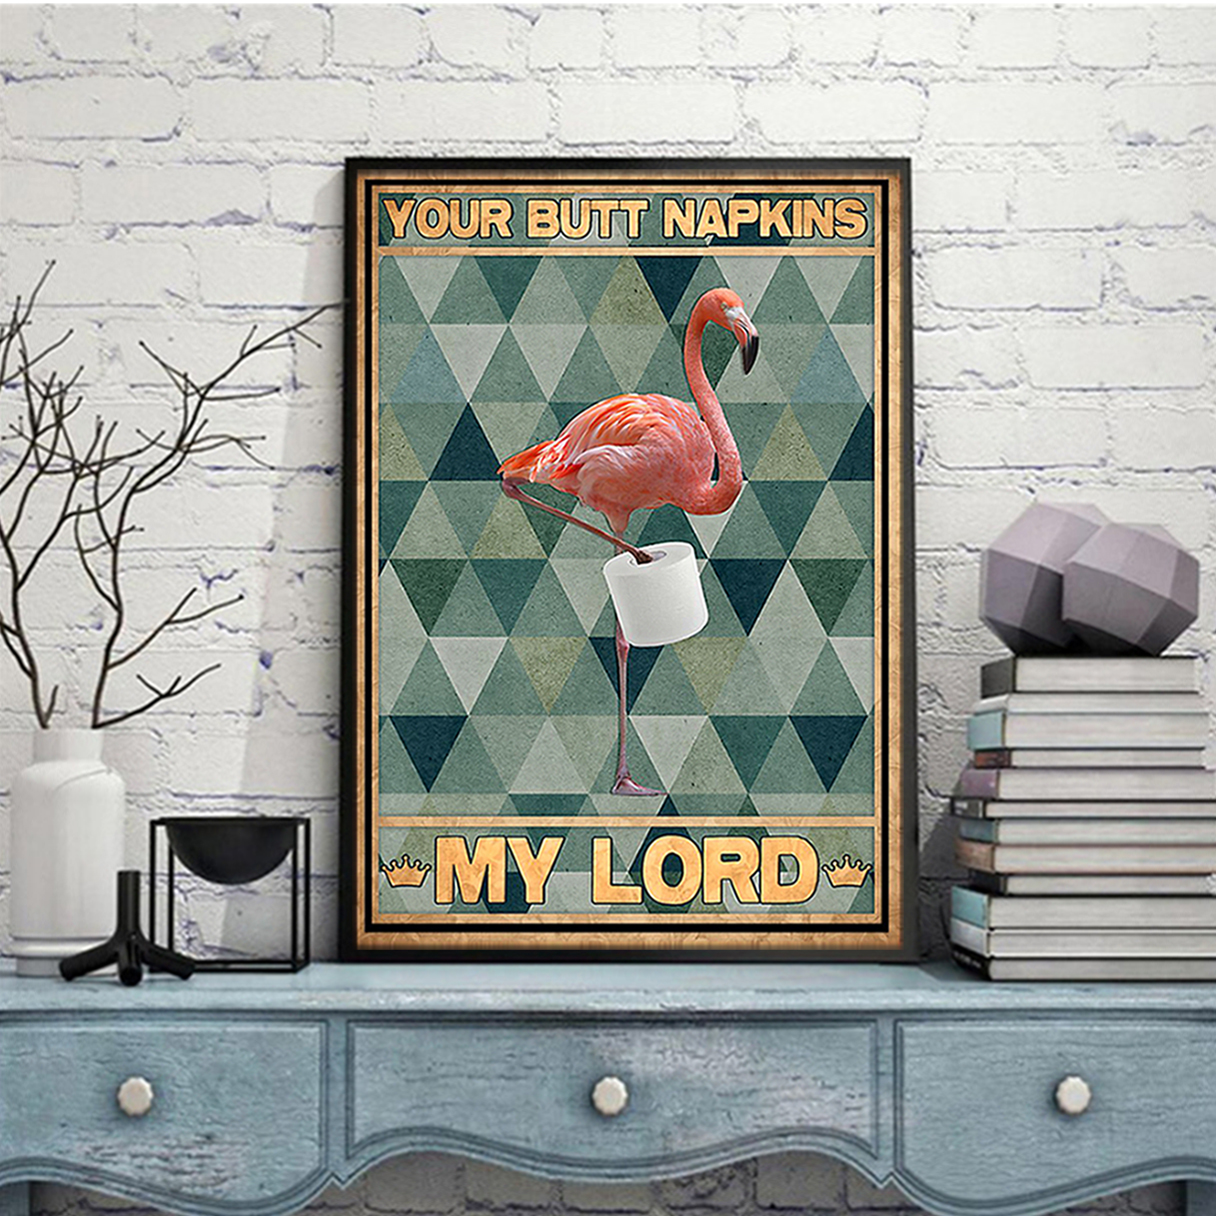 Flamingo your butt napkins my lord poster A2